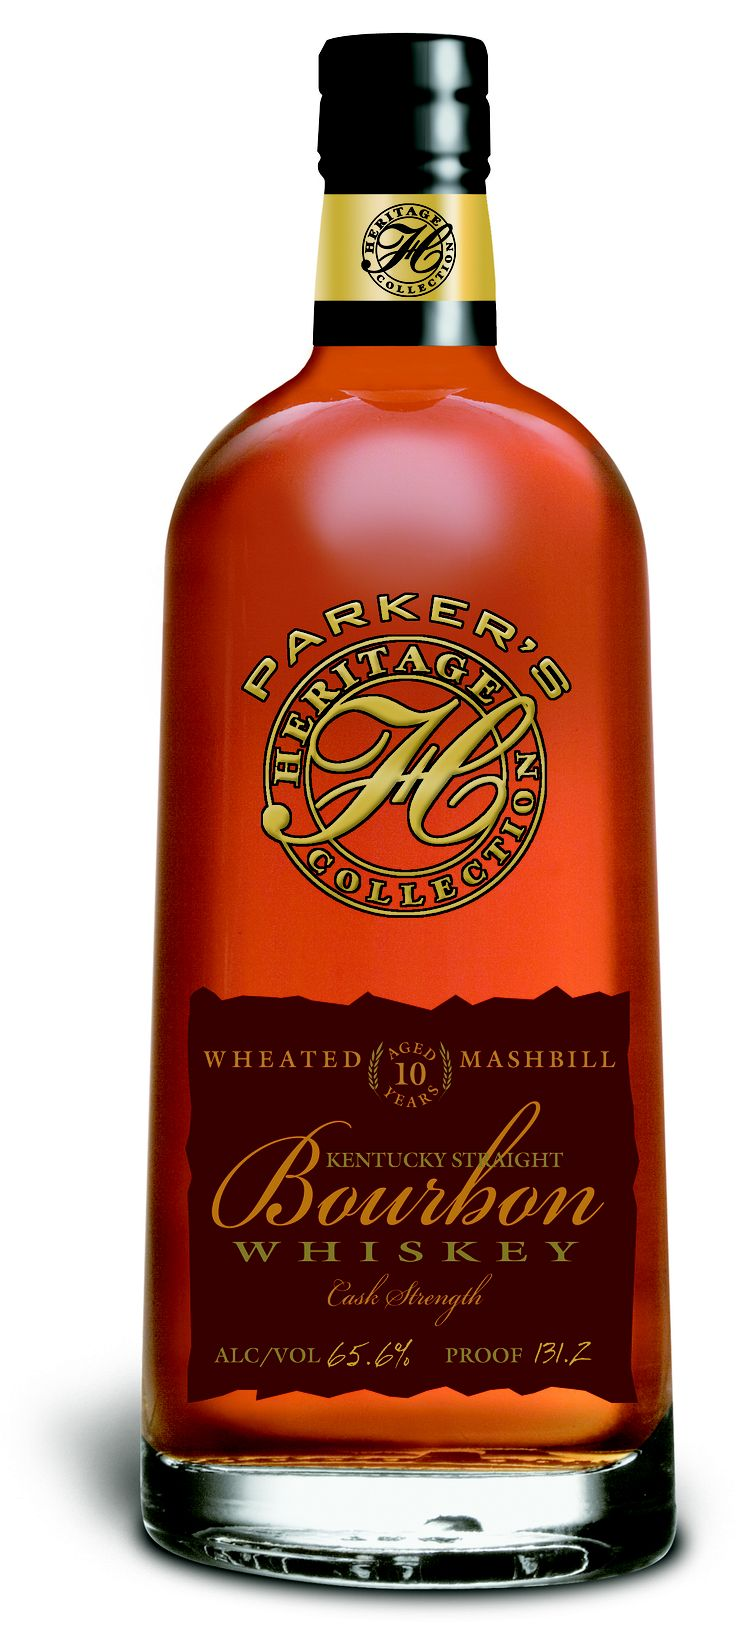 Bottle photo Wheated Bourbon Aged 10 Years, New Parker's Heritage Collection from Heaven Hill Distilleries   Happy Birthday, dear....